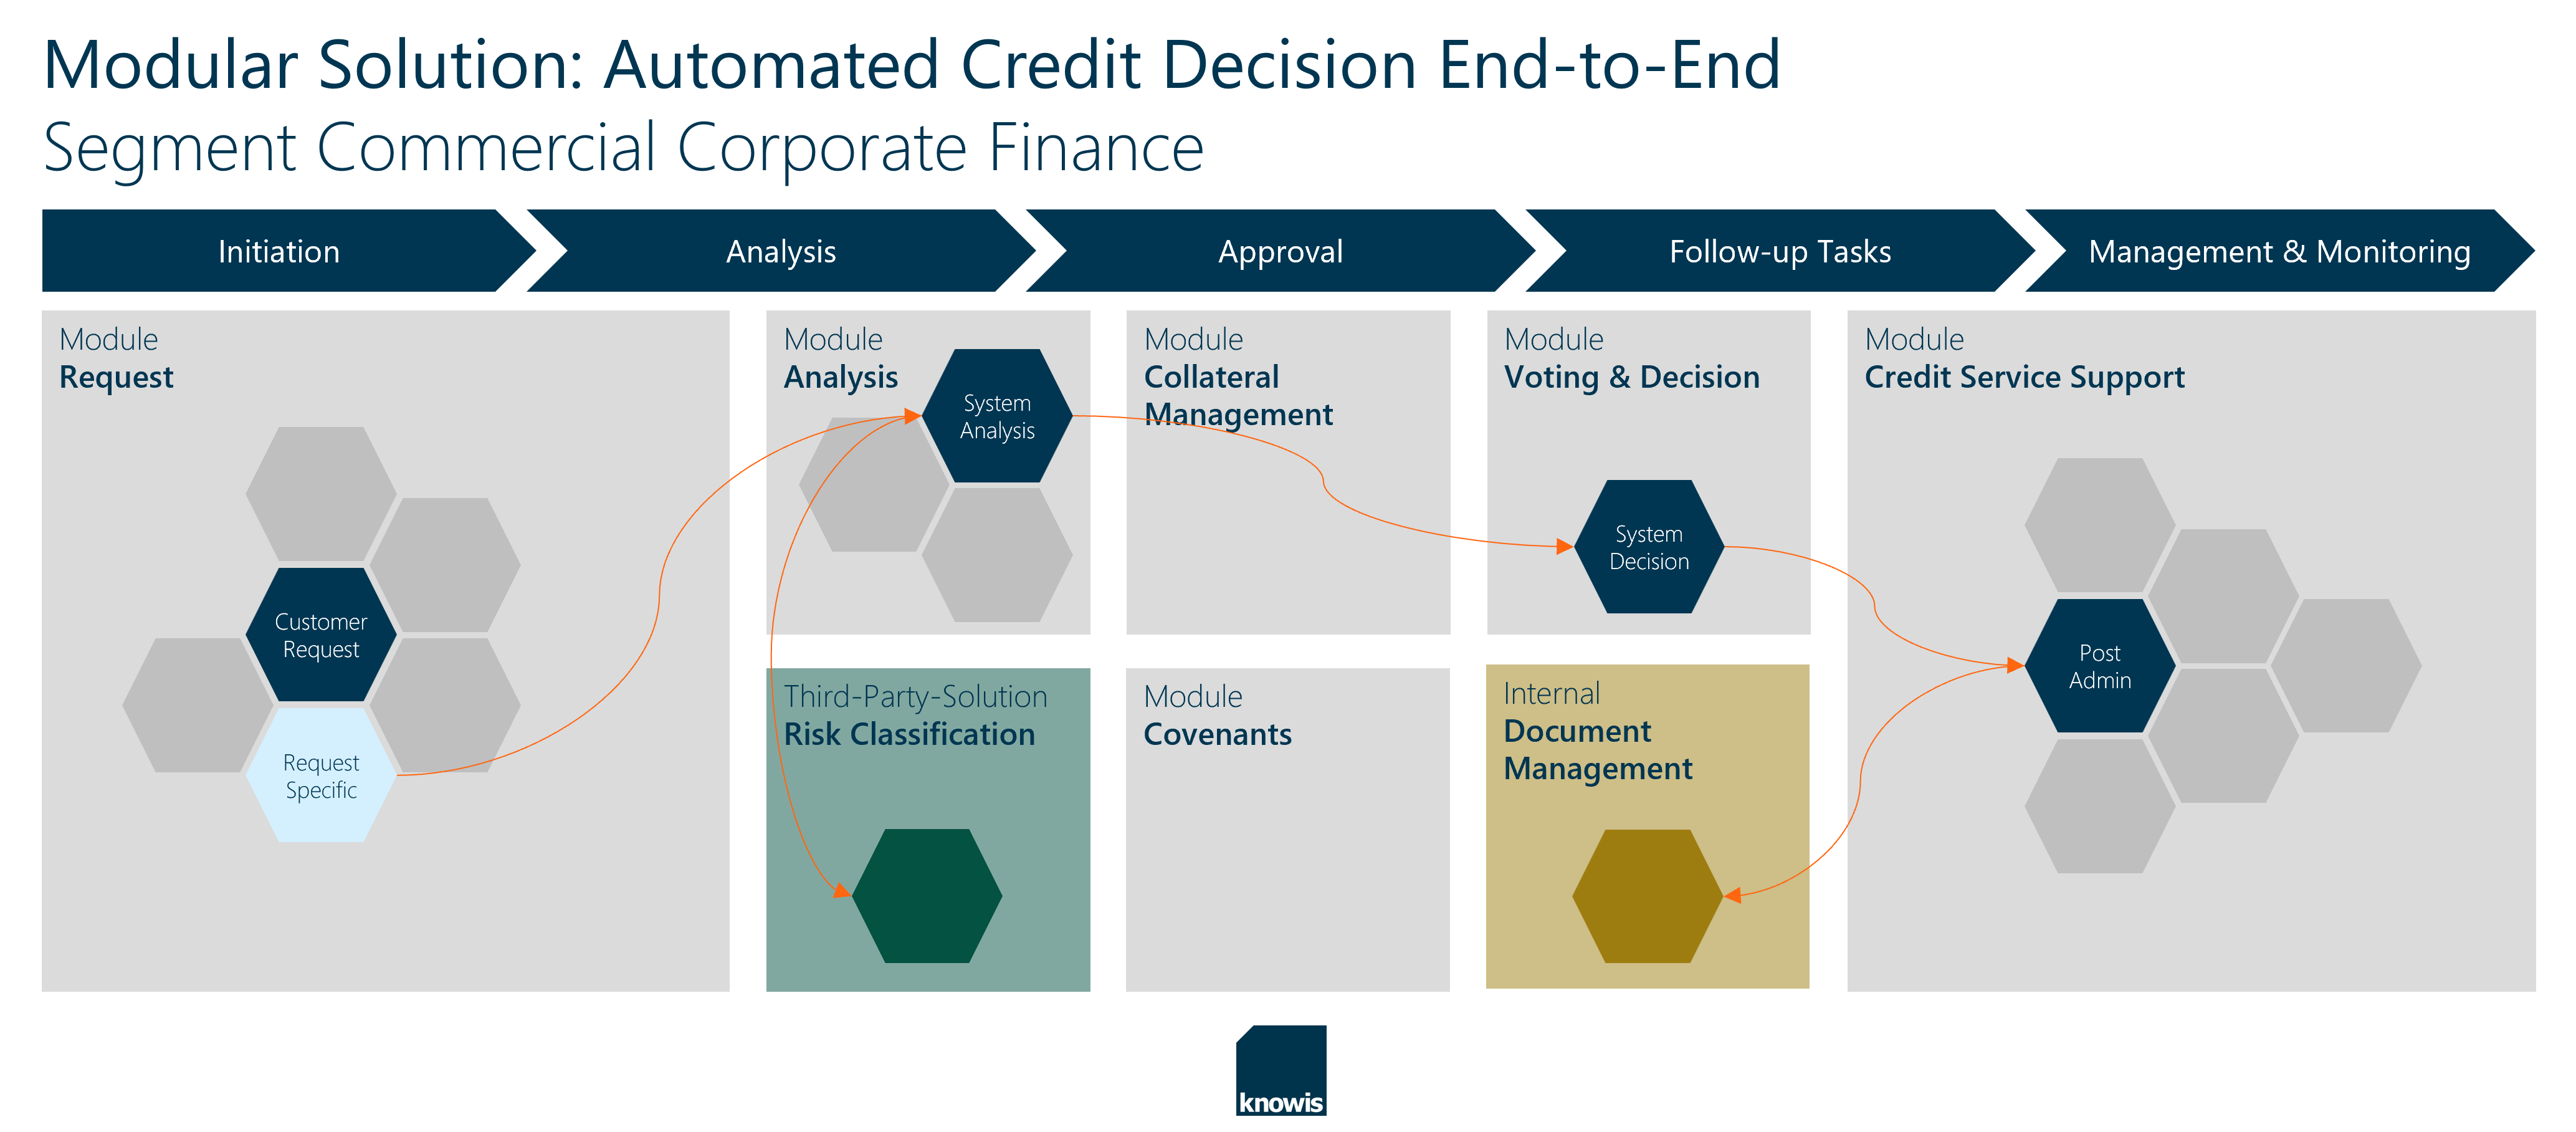 Modular Solution: Automated Credit Decision End-to-End